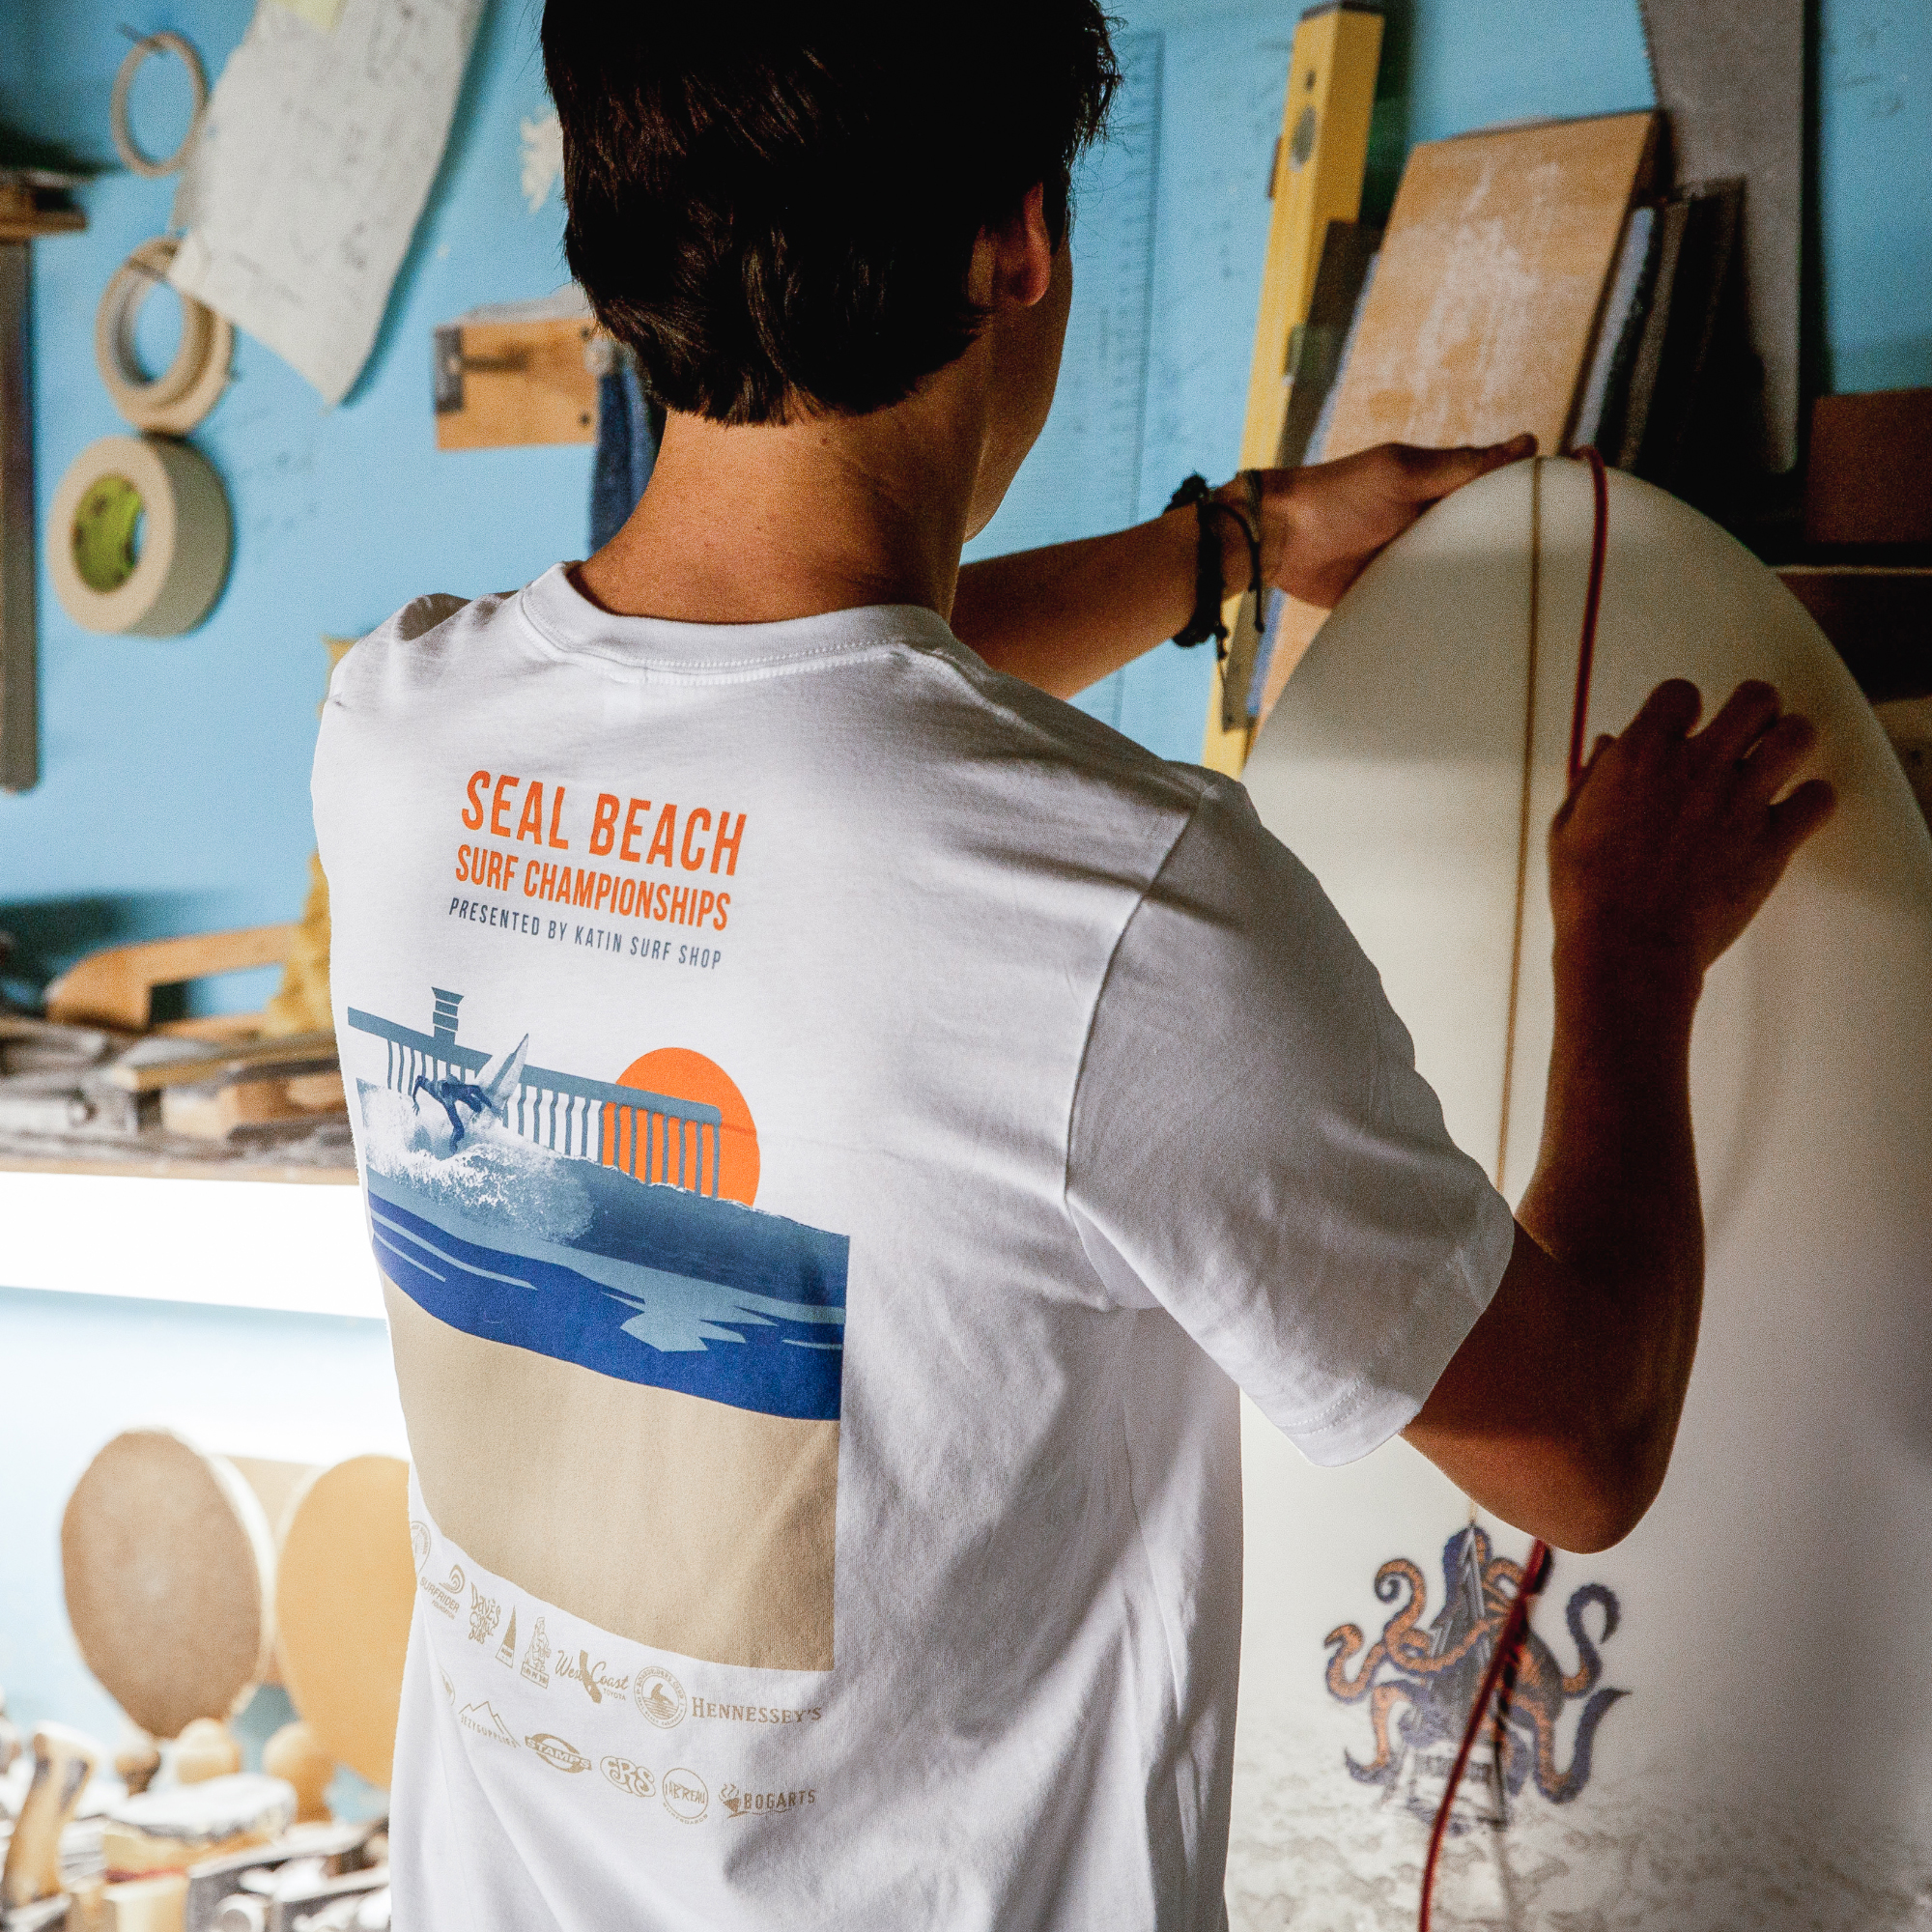 - Proceeds from every purchase of this collection will go towards funding the 2020 Seal Beach Surfing Championships.